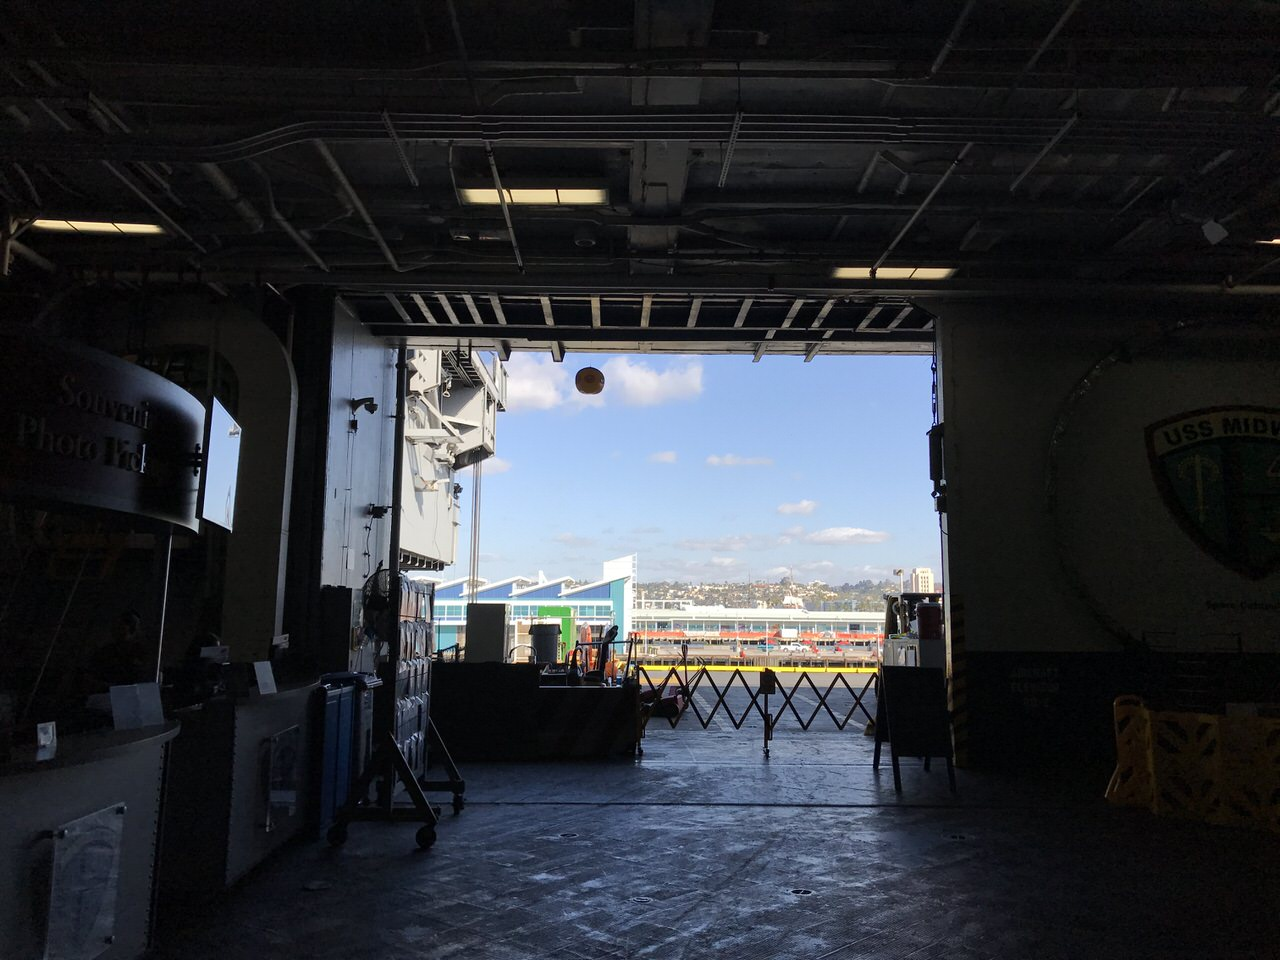 Uss midway museum 0560